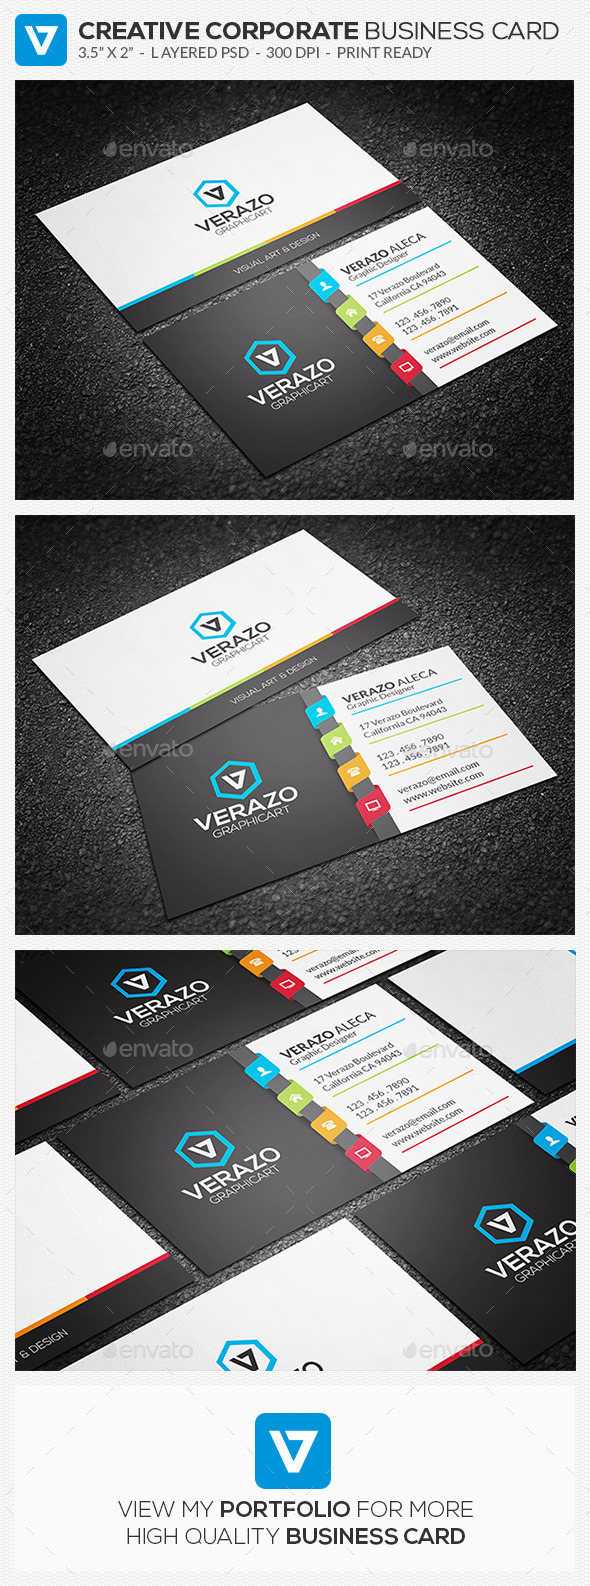 GraphicRiver Creative Corporate Business Card 80 11275622